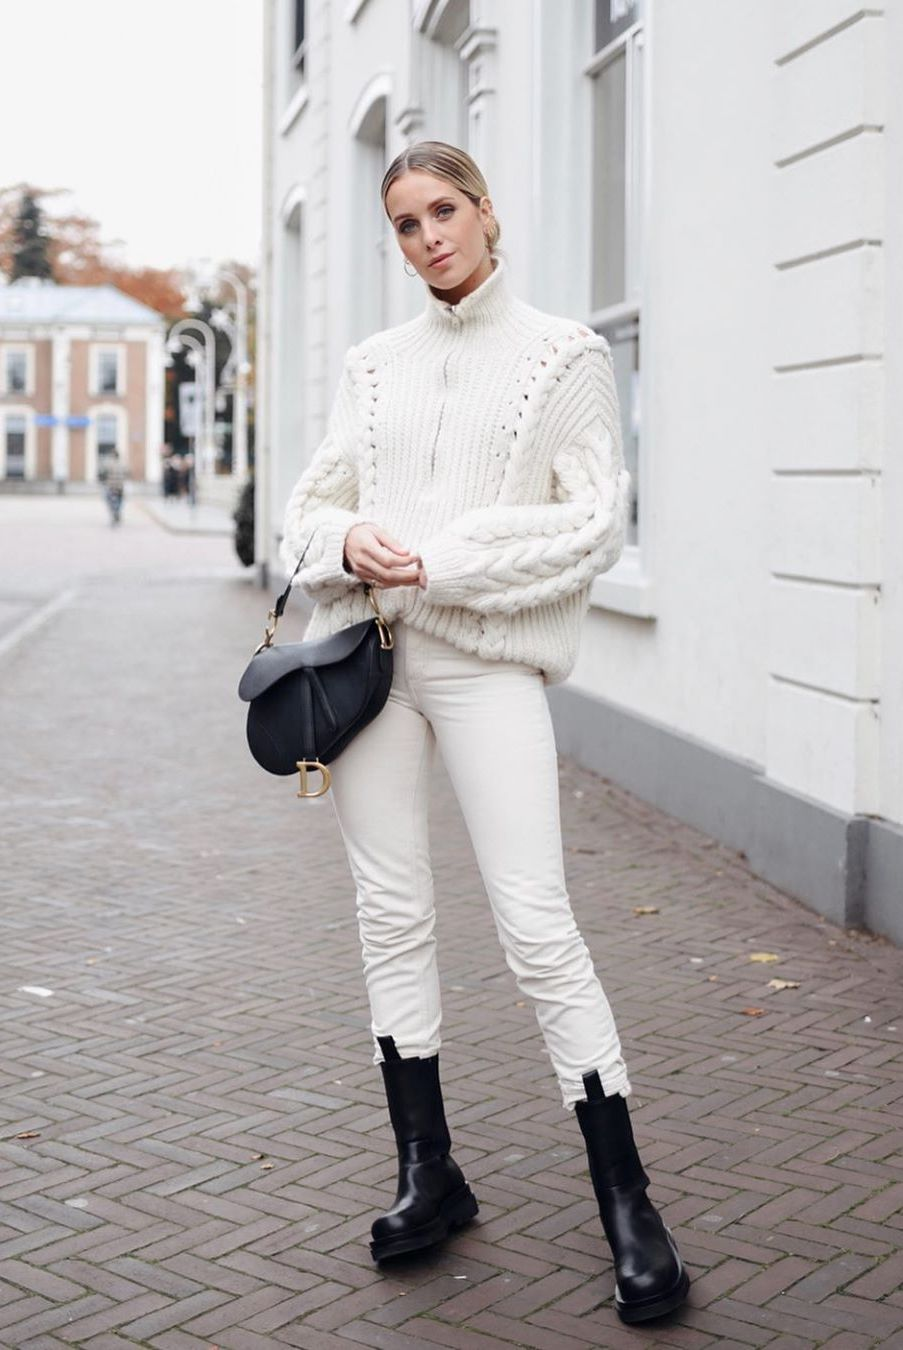 all white winter look with cable knit sweater